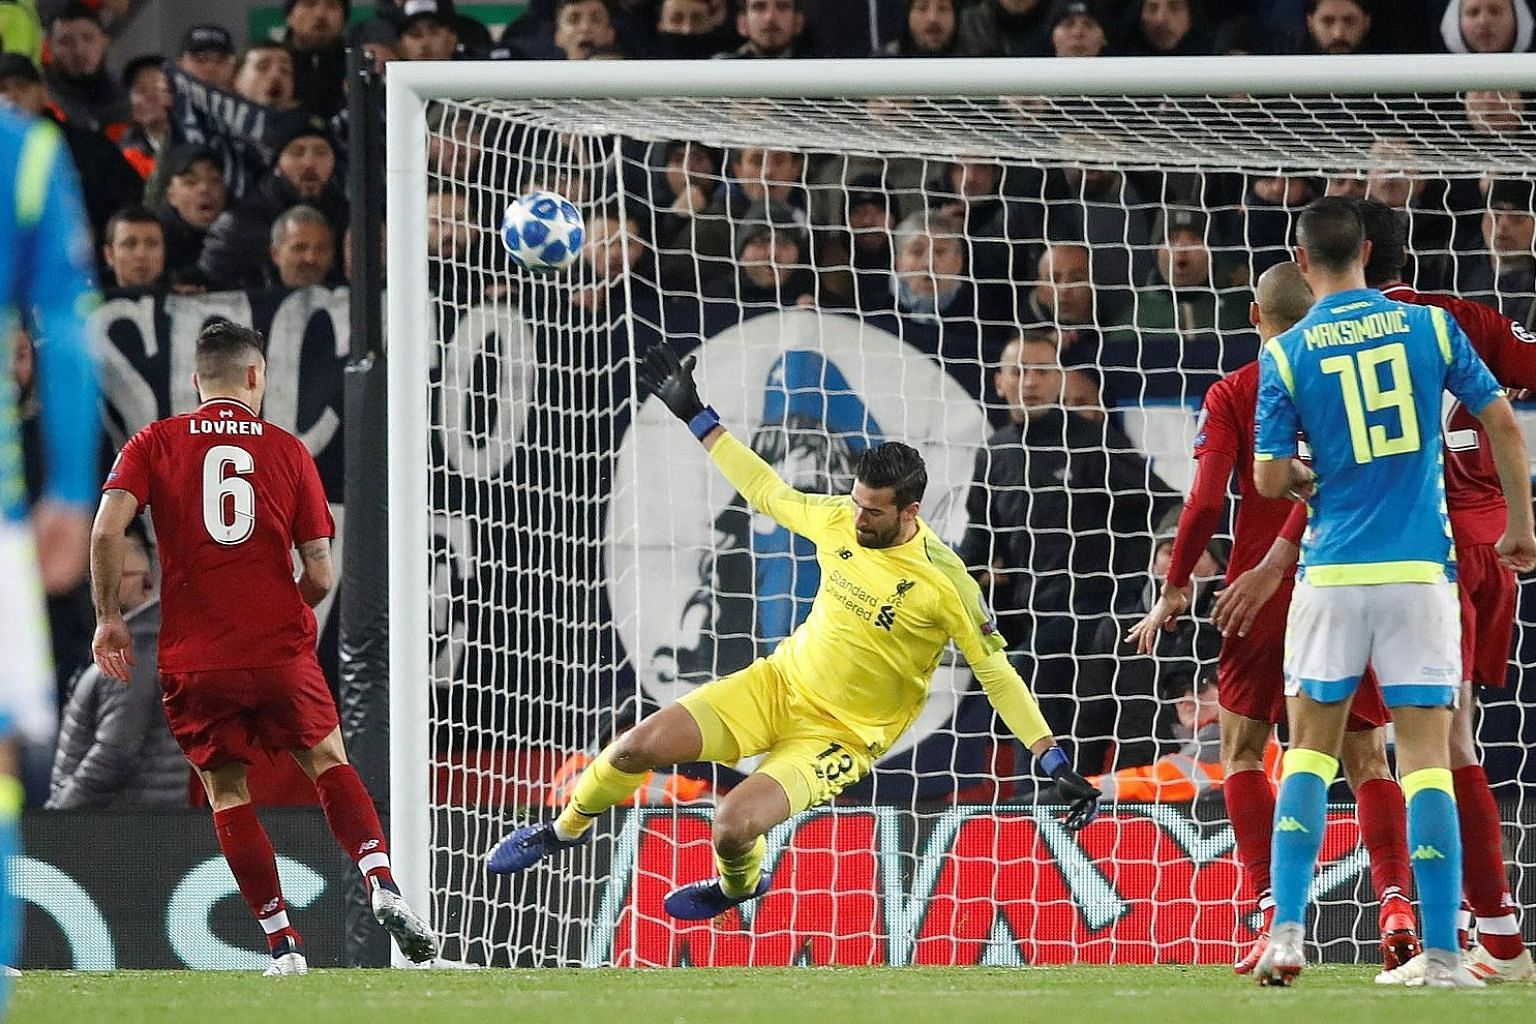 Liverpool goalkeeper Alisson Becker has kept 10 clean sheets in 16 Premier League games this season, and this crucial stoppage-time save against Napoli on Tuesday gave the Reds the 1-0 win to advance to the knockout stages of the Champions League.